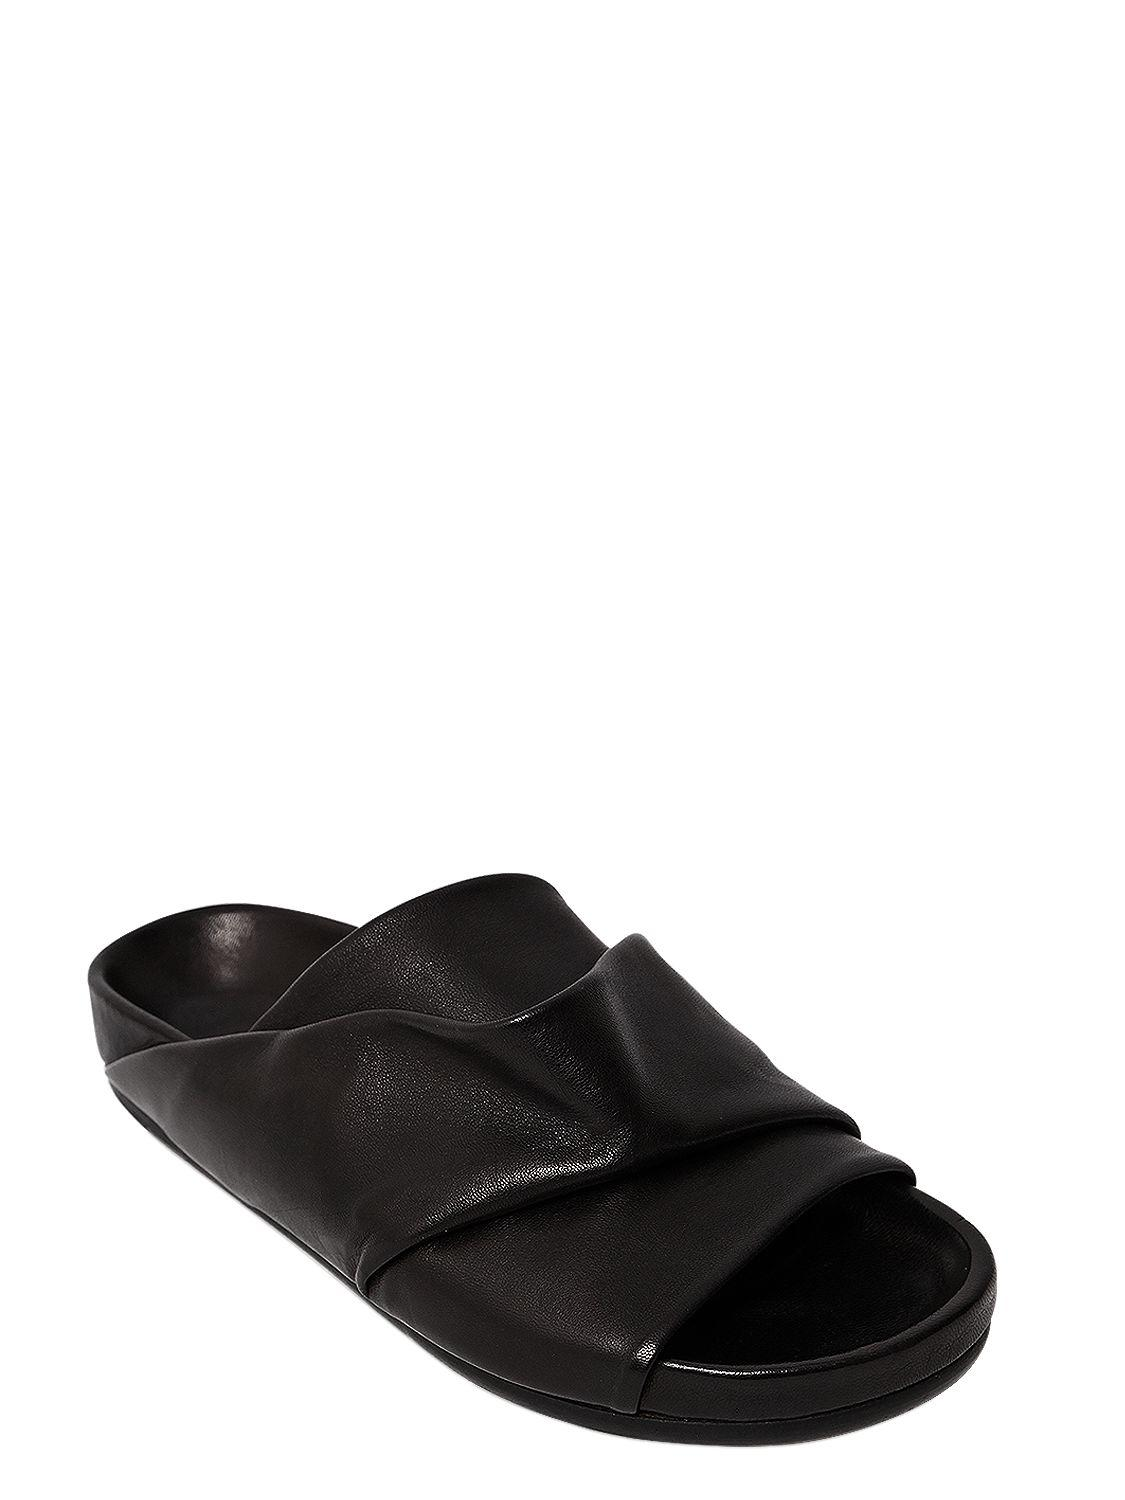 Rick Owens 20MM MOBIUS LEATHER SLIDE FLATS zrZCN